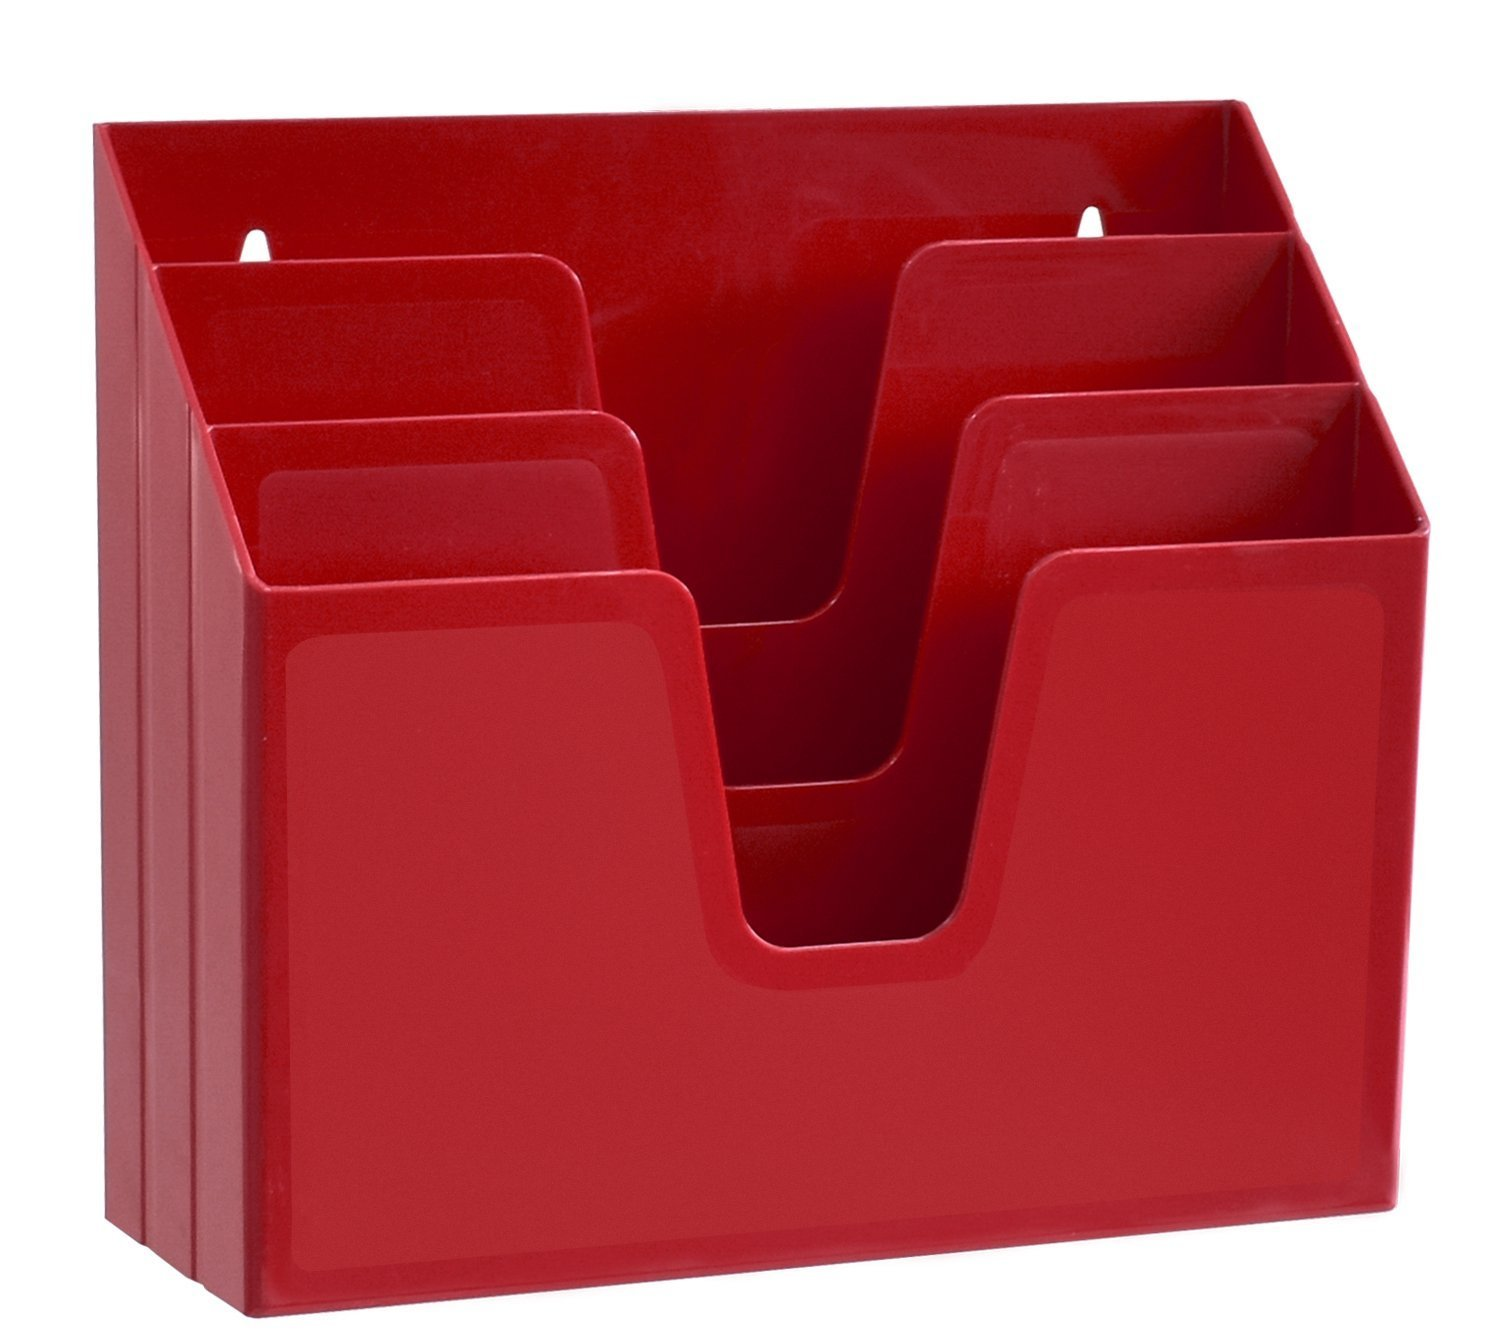 Acrimet Horizontal Triple File Folder Organizer (Solid Red Color) 860.VMO Vermelho Opaco